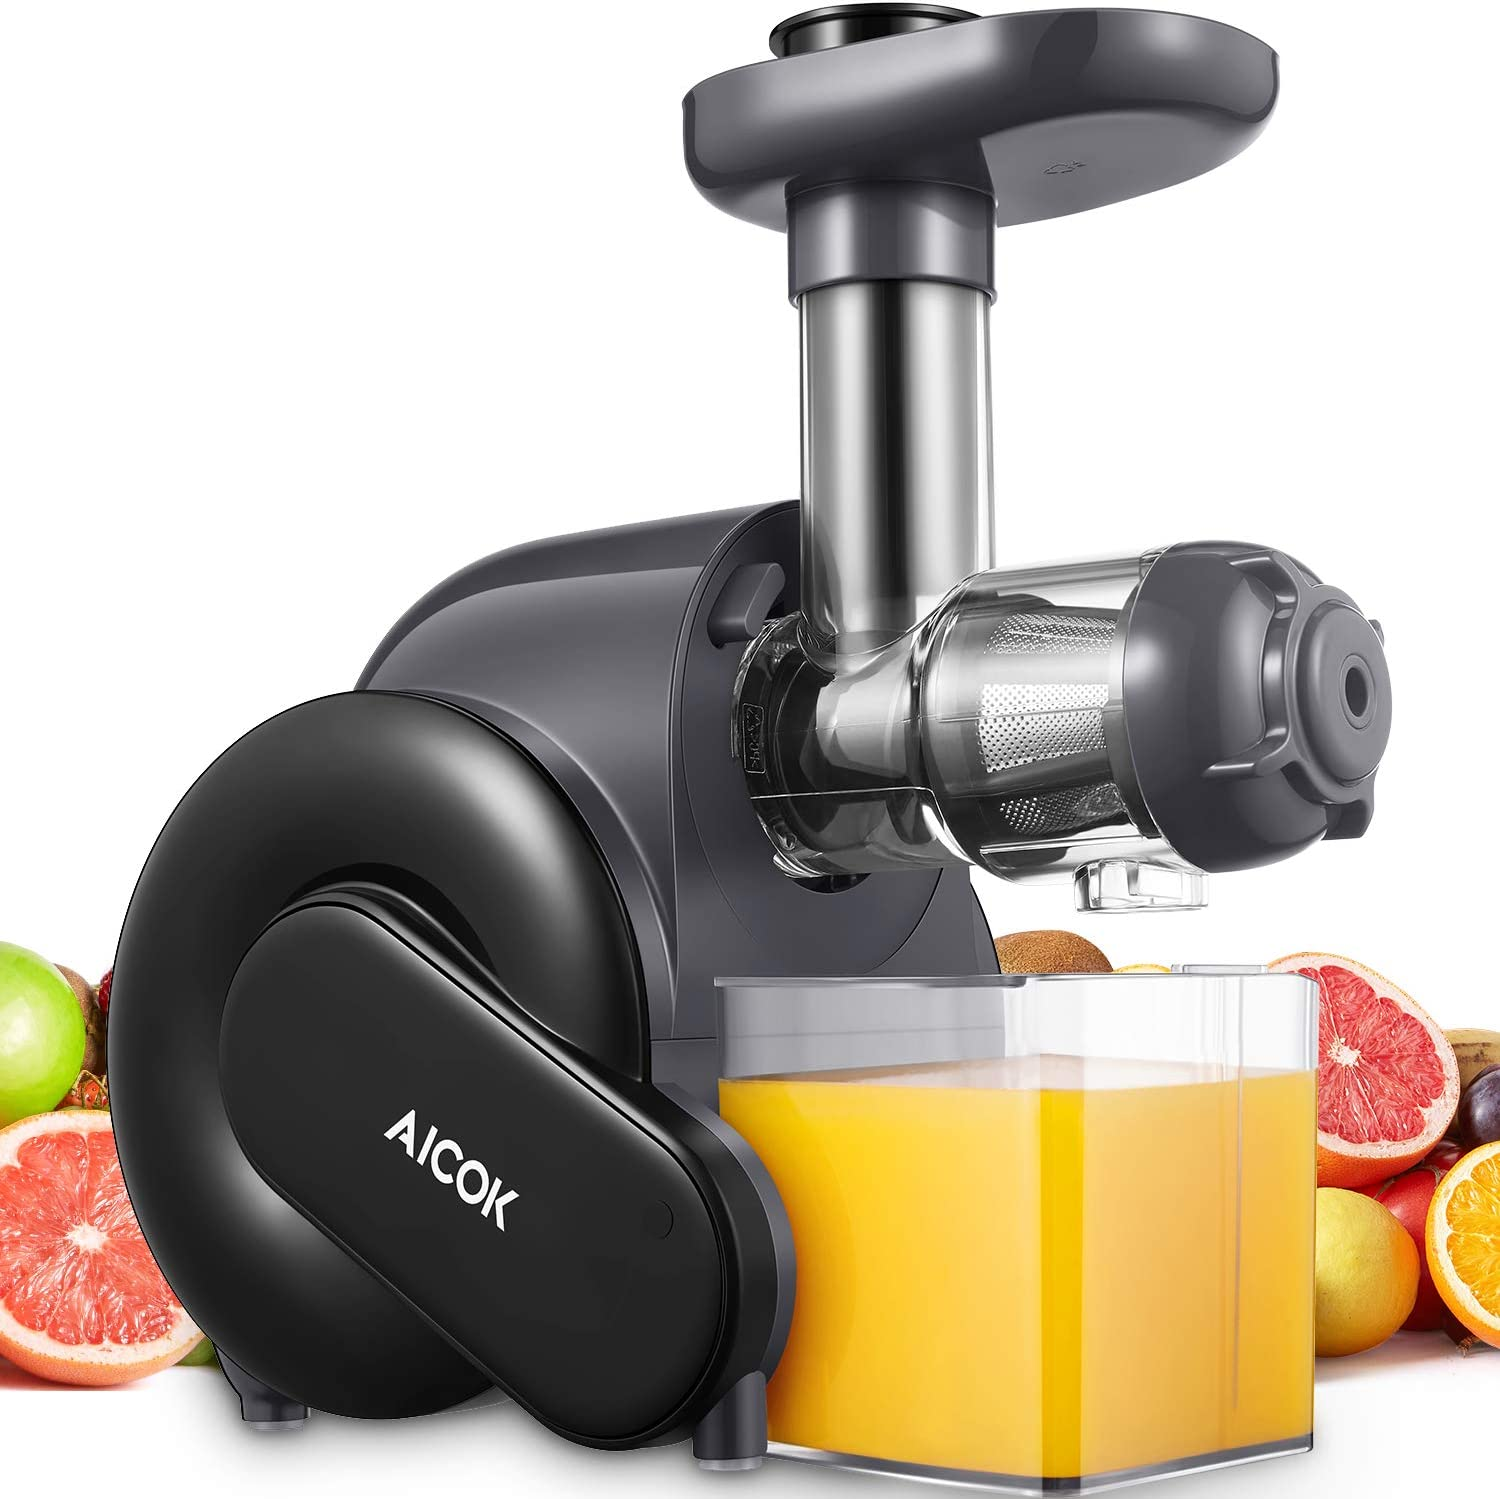 Juicer, Aicok Slow Masticating Juicer with Quiet Motor, Upgrade Filter Juice Machine for High Nutrient Juice, Cold Press Juicer with Recipes, Easy to Clean, Safe Lock, Safe Chute, Reserve Function